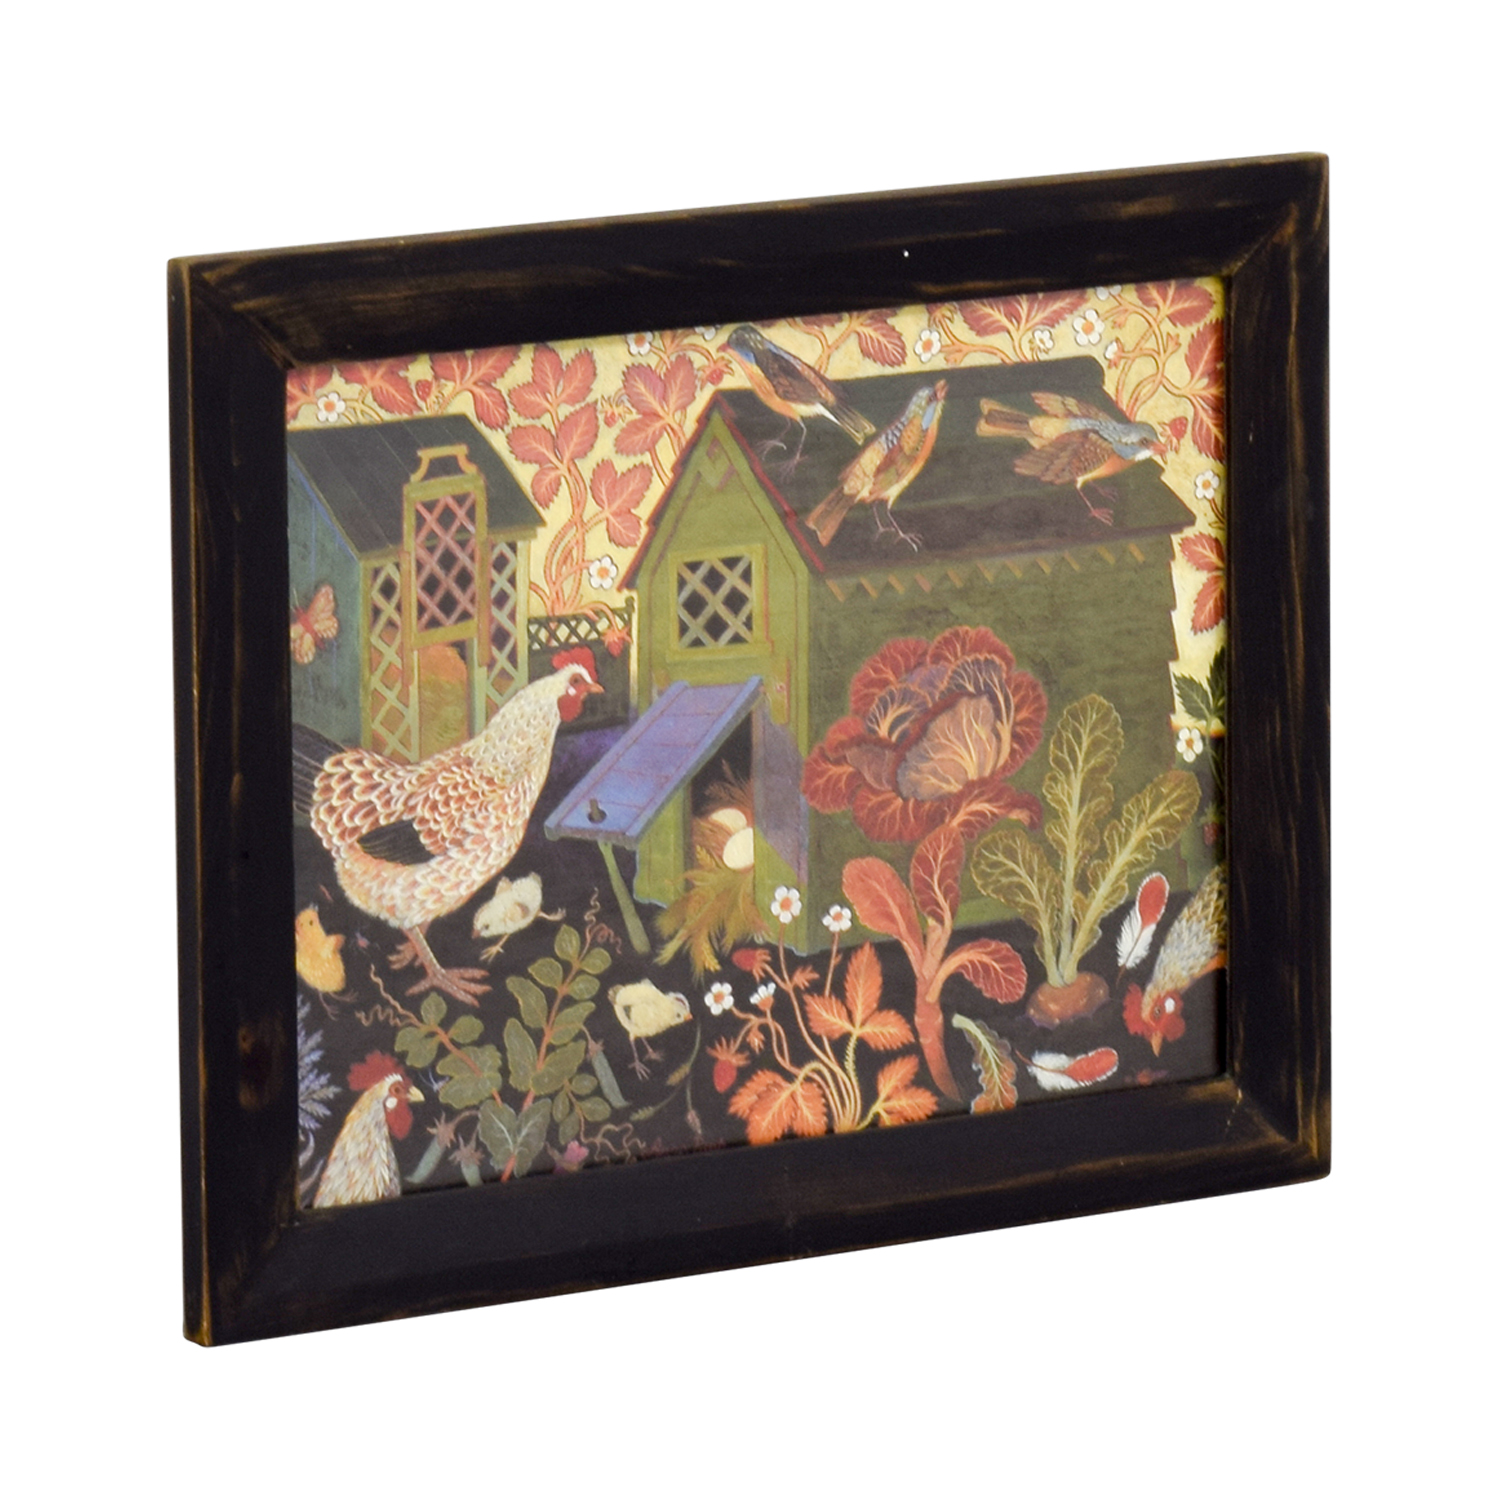 Clapper Hollow Designs Chicken Coop Framed Print Clapper Hollow Designs